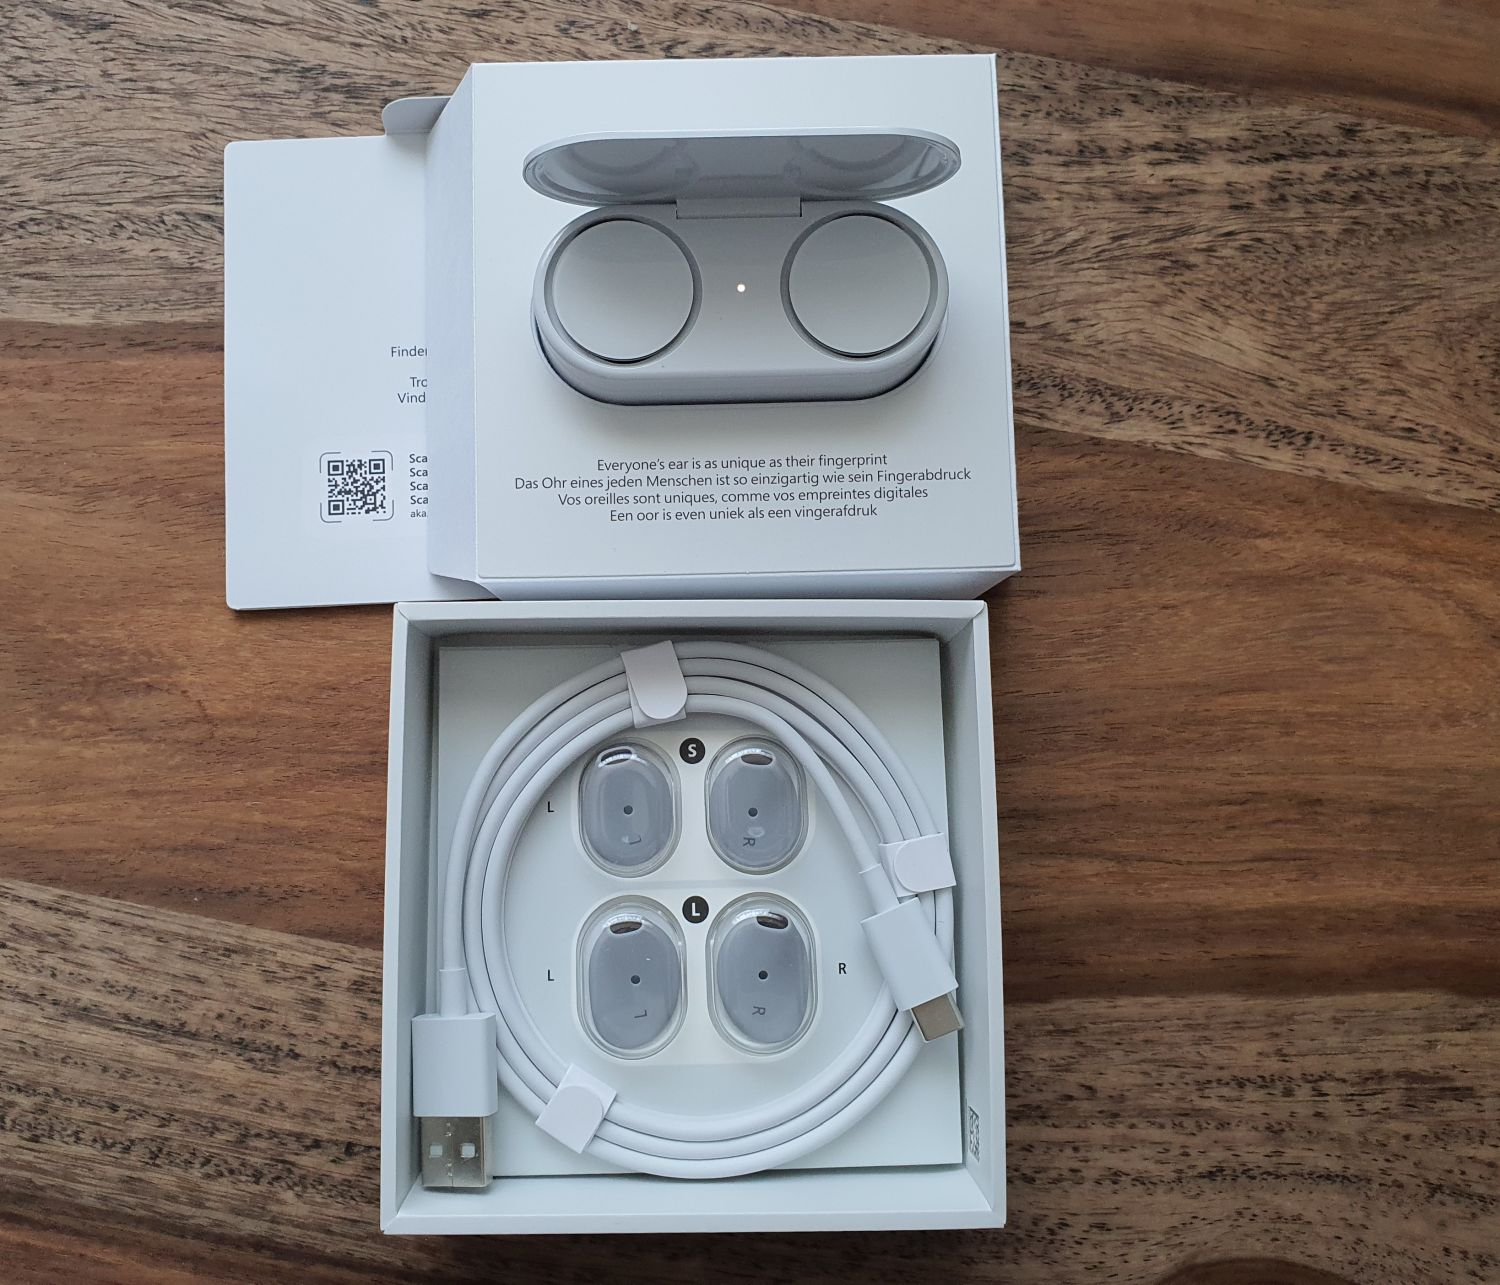 Scope of delivery of the Surface Earbuds